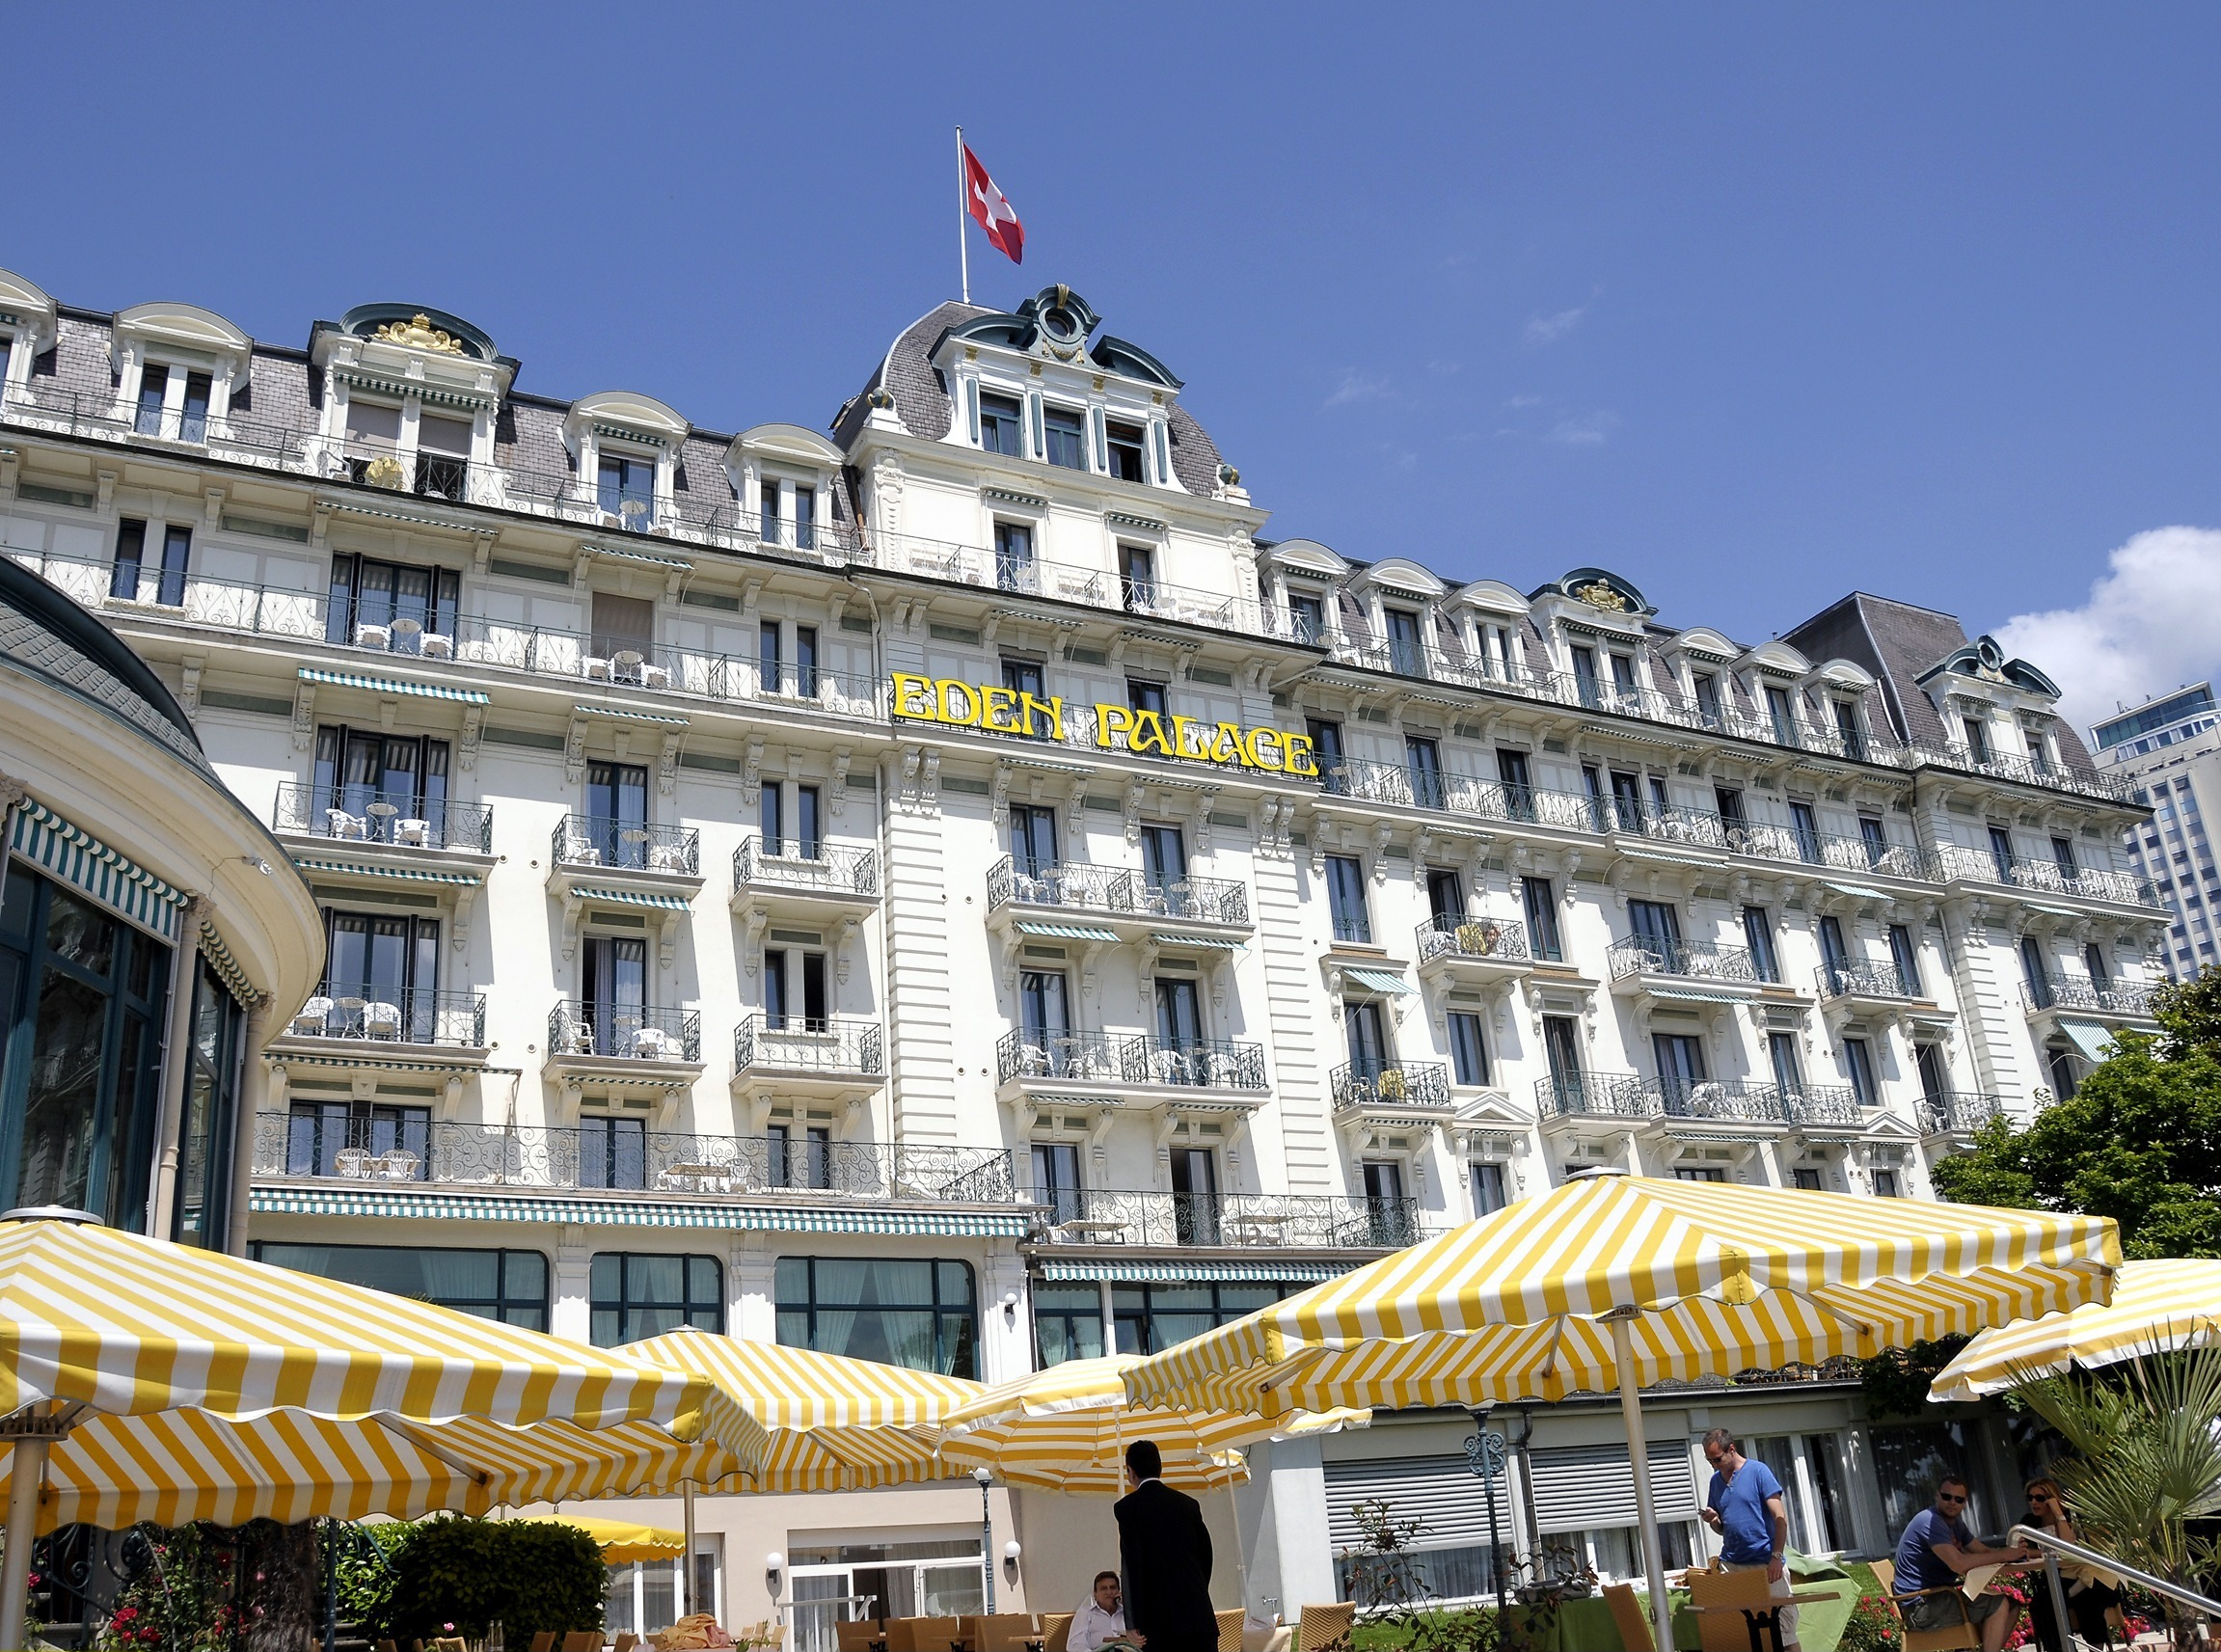 """(GERMANY OUT) Switzerland - Montreux: Hotel """"Eden Palace"""". (Photo by Klaus Winkler/ullstein bild via Getty Images)"""